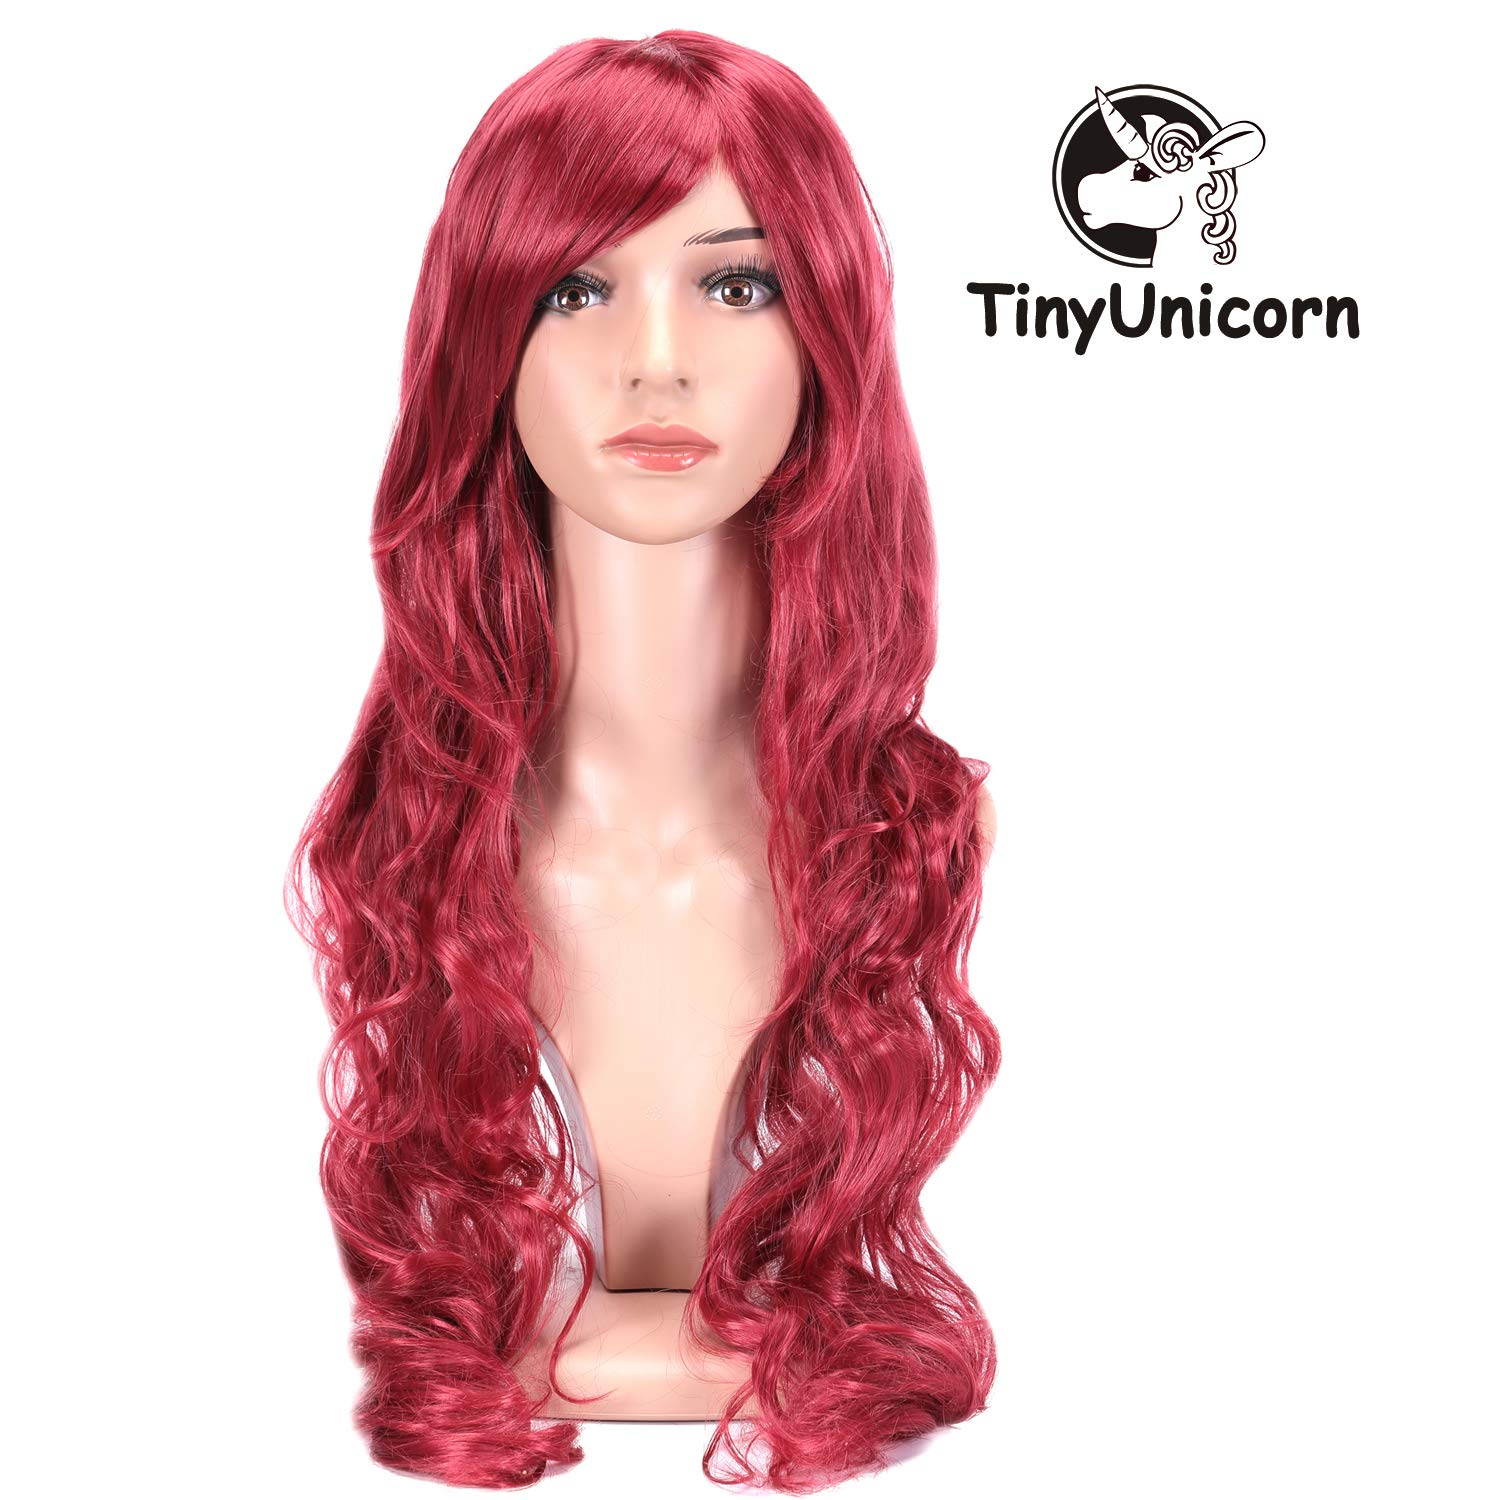 Curly Cosplay Wig Long Hair Heat Resistant Spiral Costume Wigs Anime Fashion Wavy Curly Cosplay Daily Party Silver 32 80cm Tinyunicorn